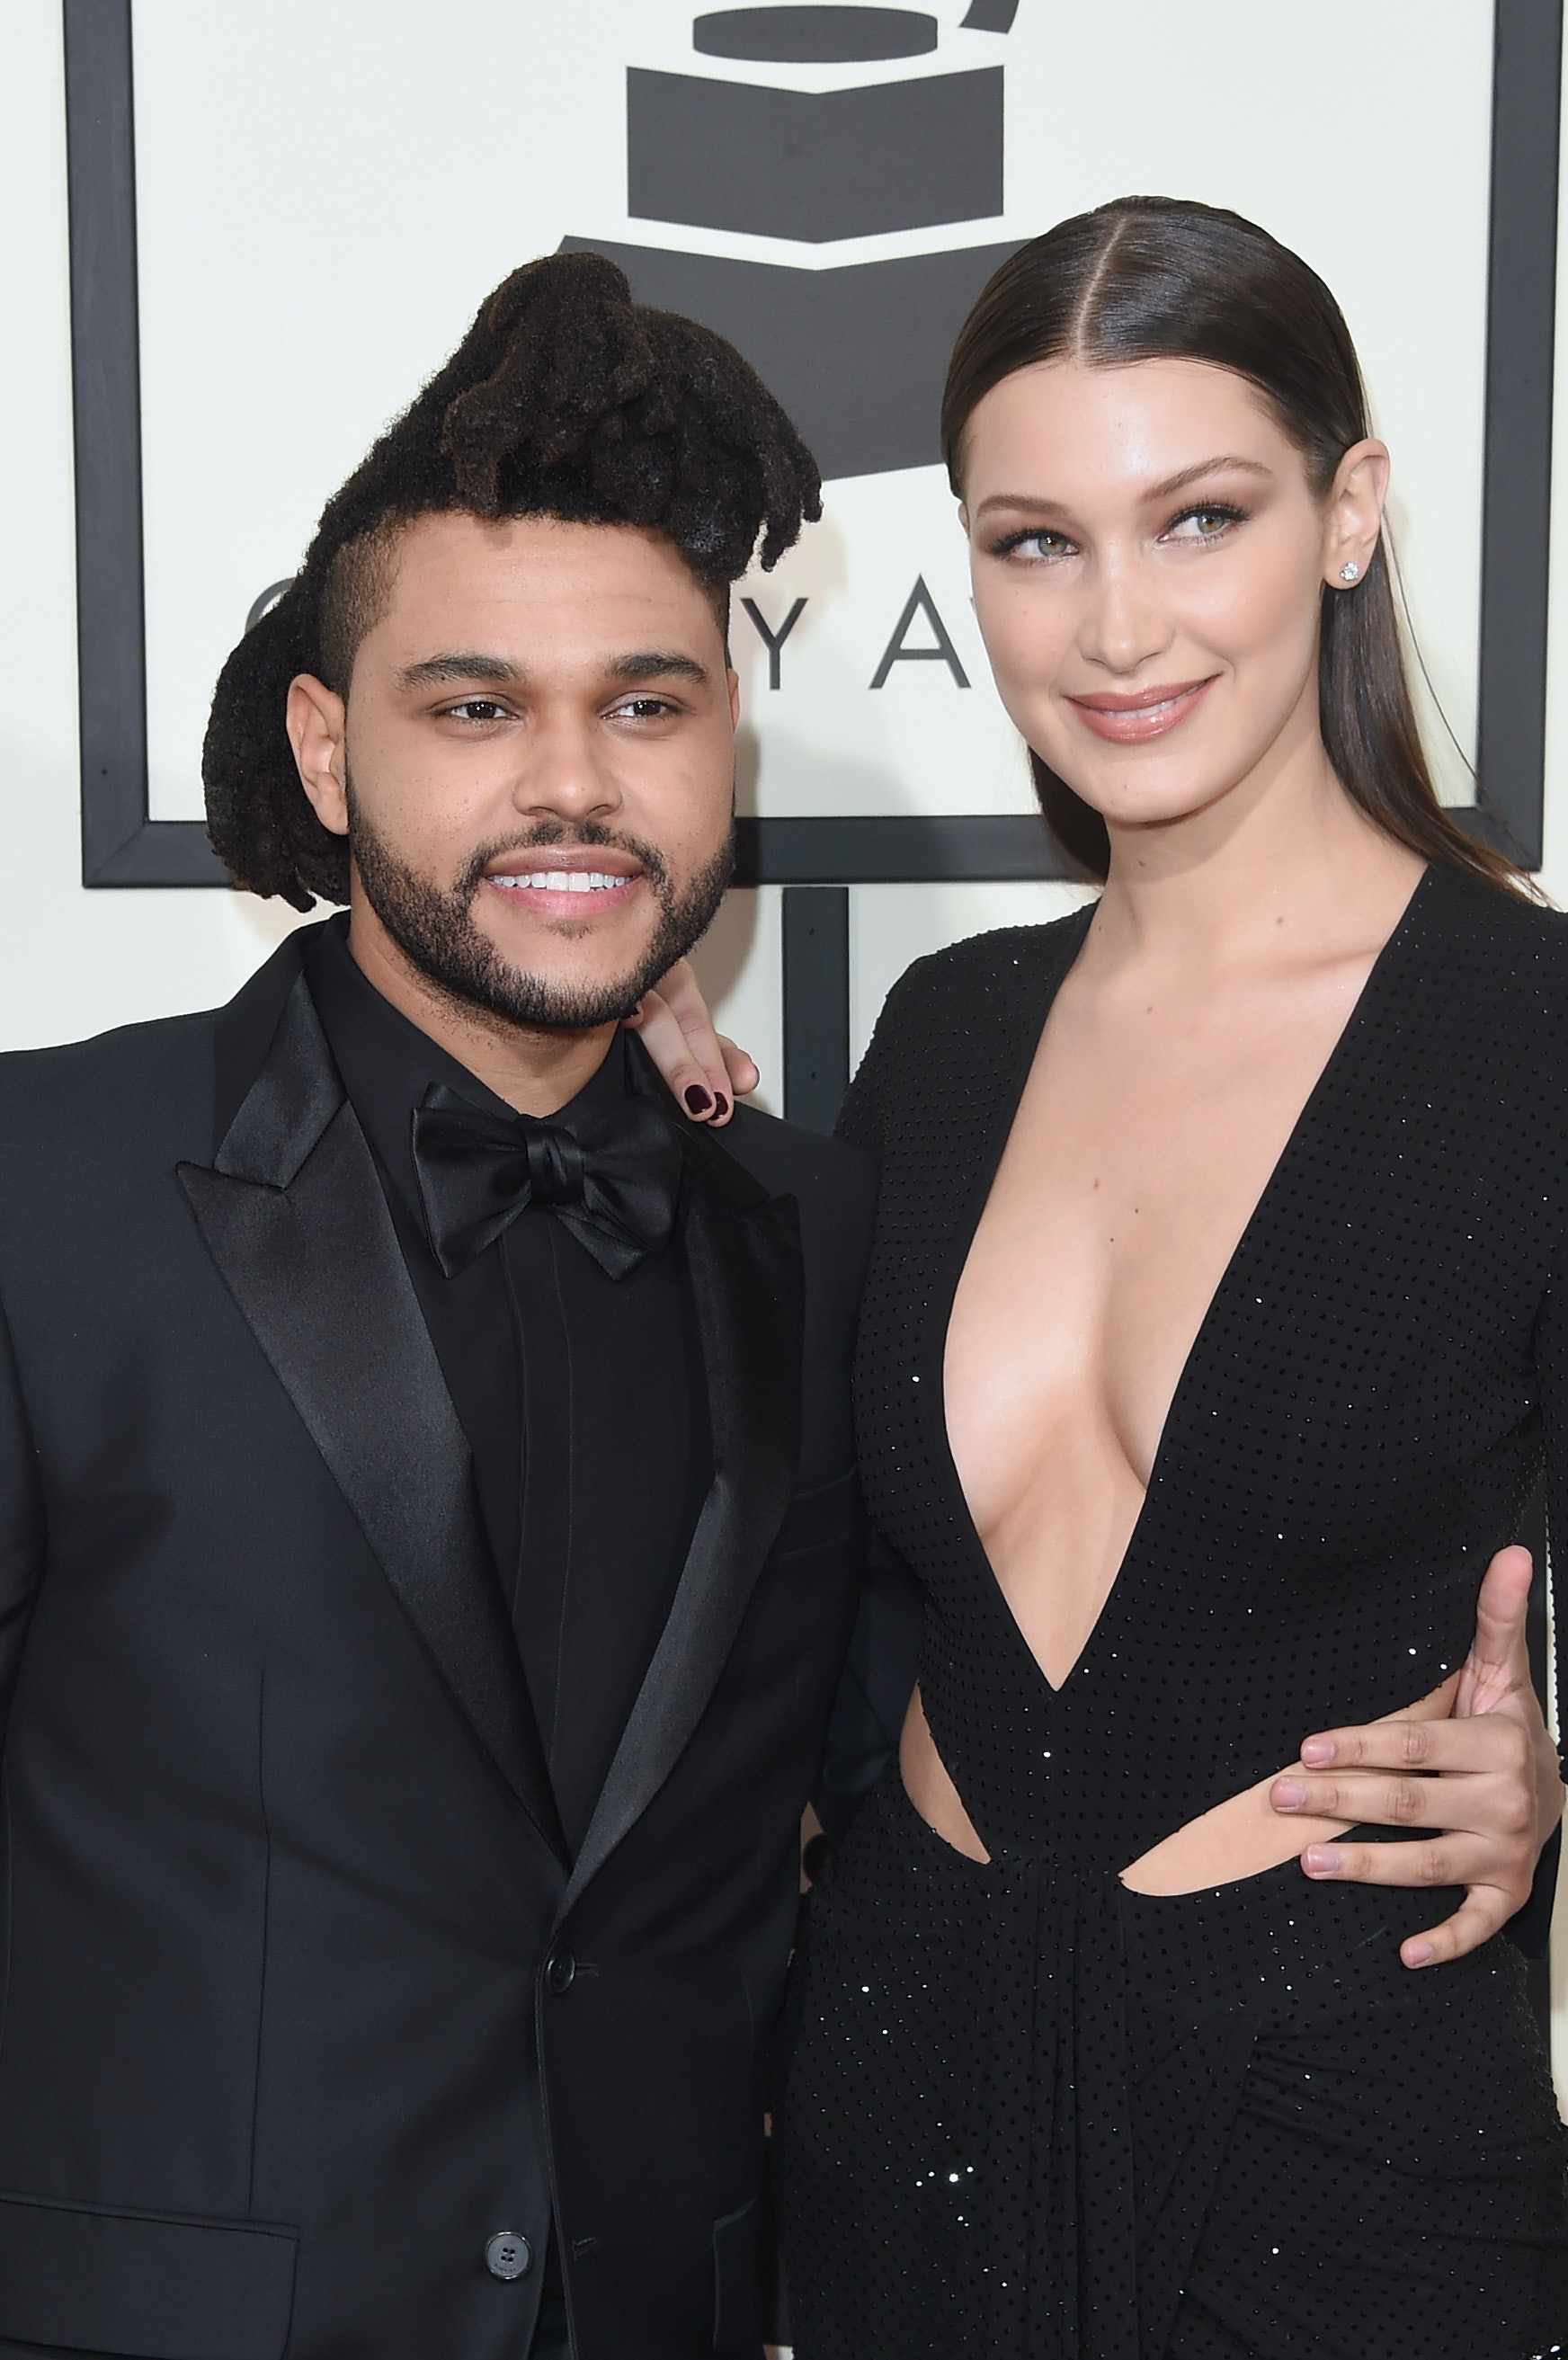 Bella Hadid The Weeknd S Relationship Timeline Shows How